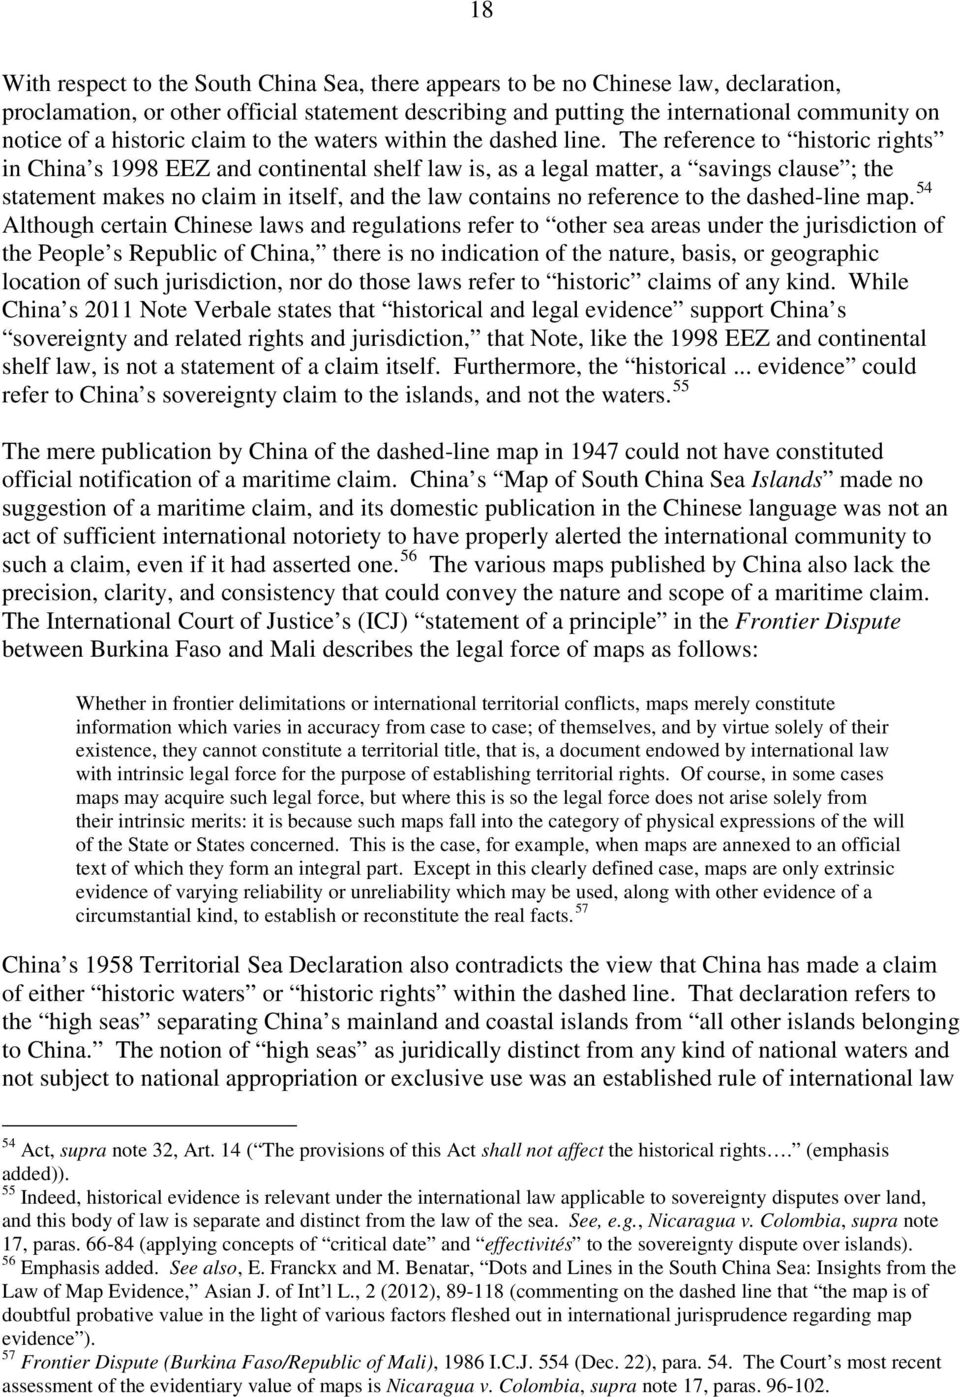 The reference to historic rights in China s 1998 EEZ and continental shelf law is, as a legal matter, a savings clause ; the statement makes no claim in itself, and the law contains no reference to